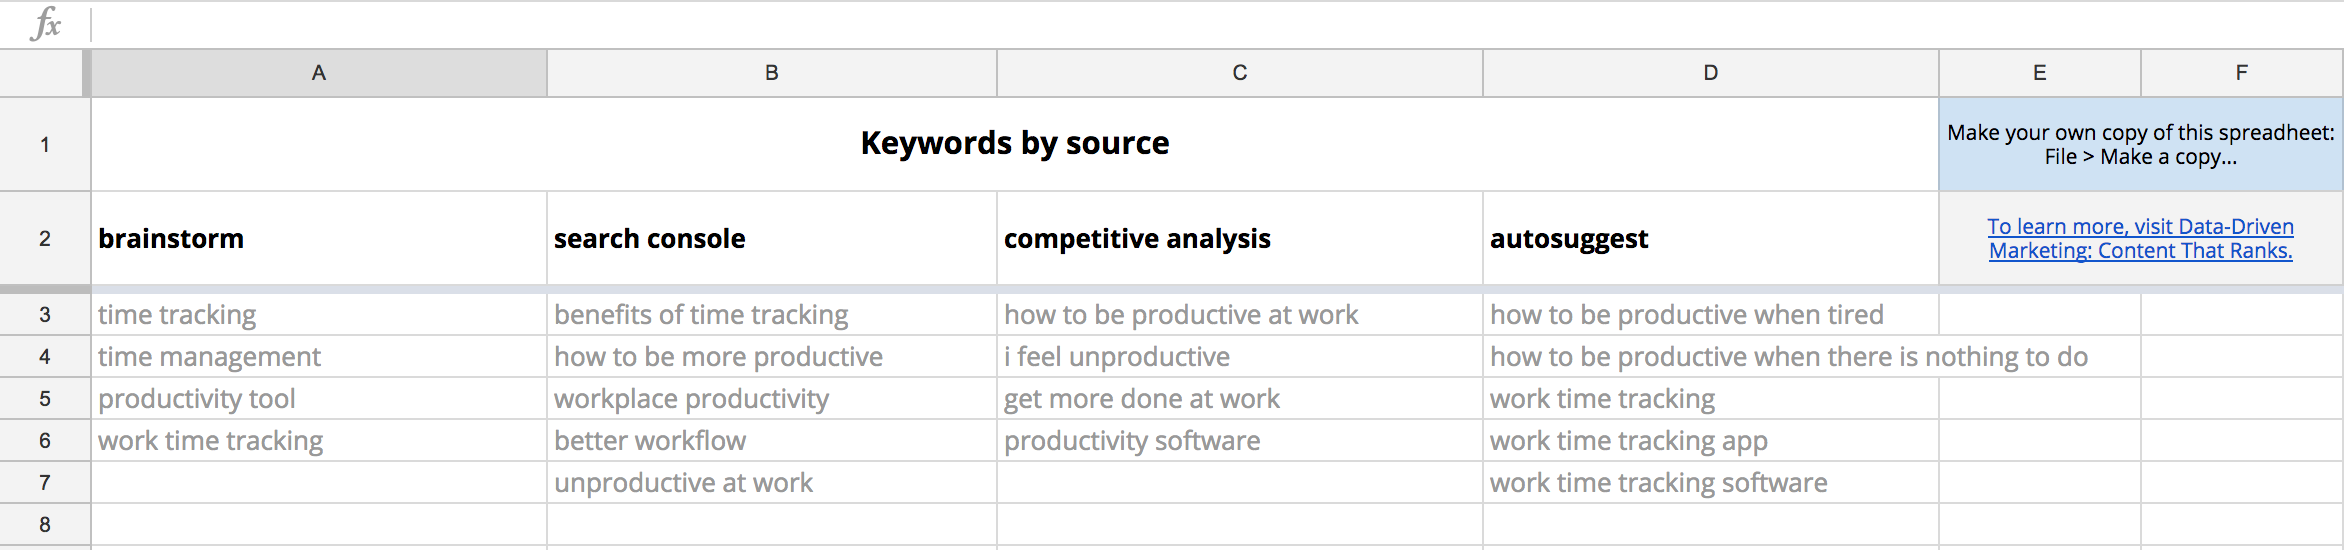 how to find the right keywords for your content strategy lessons